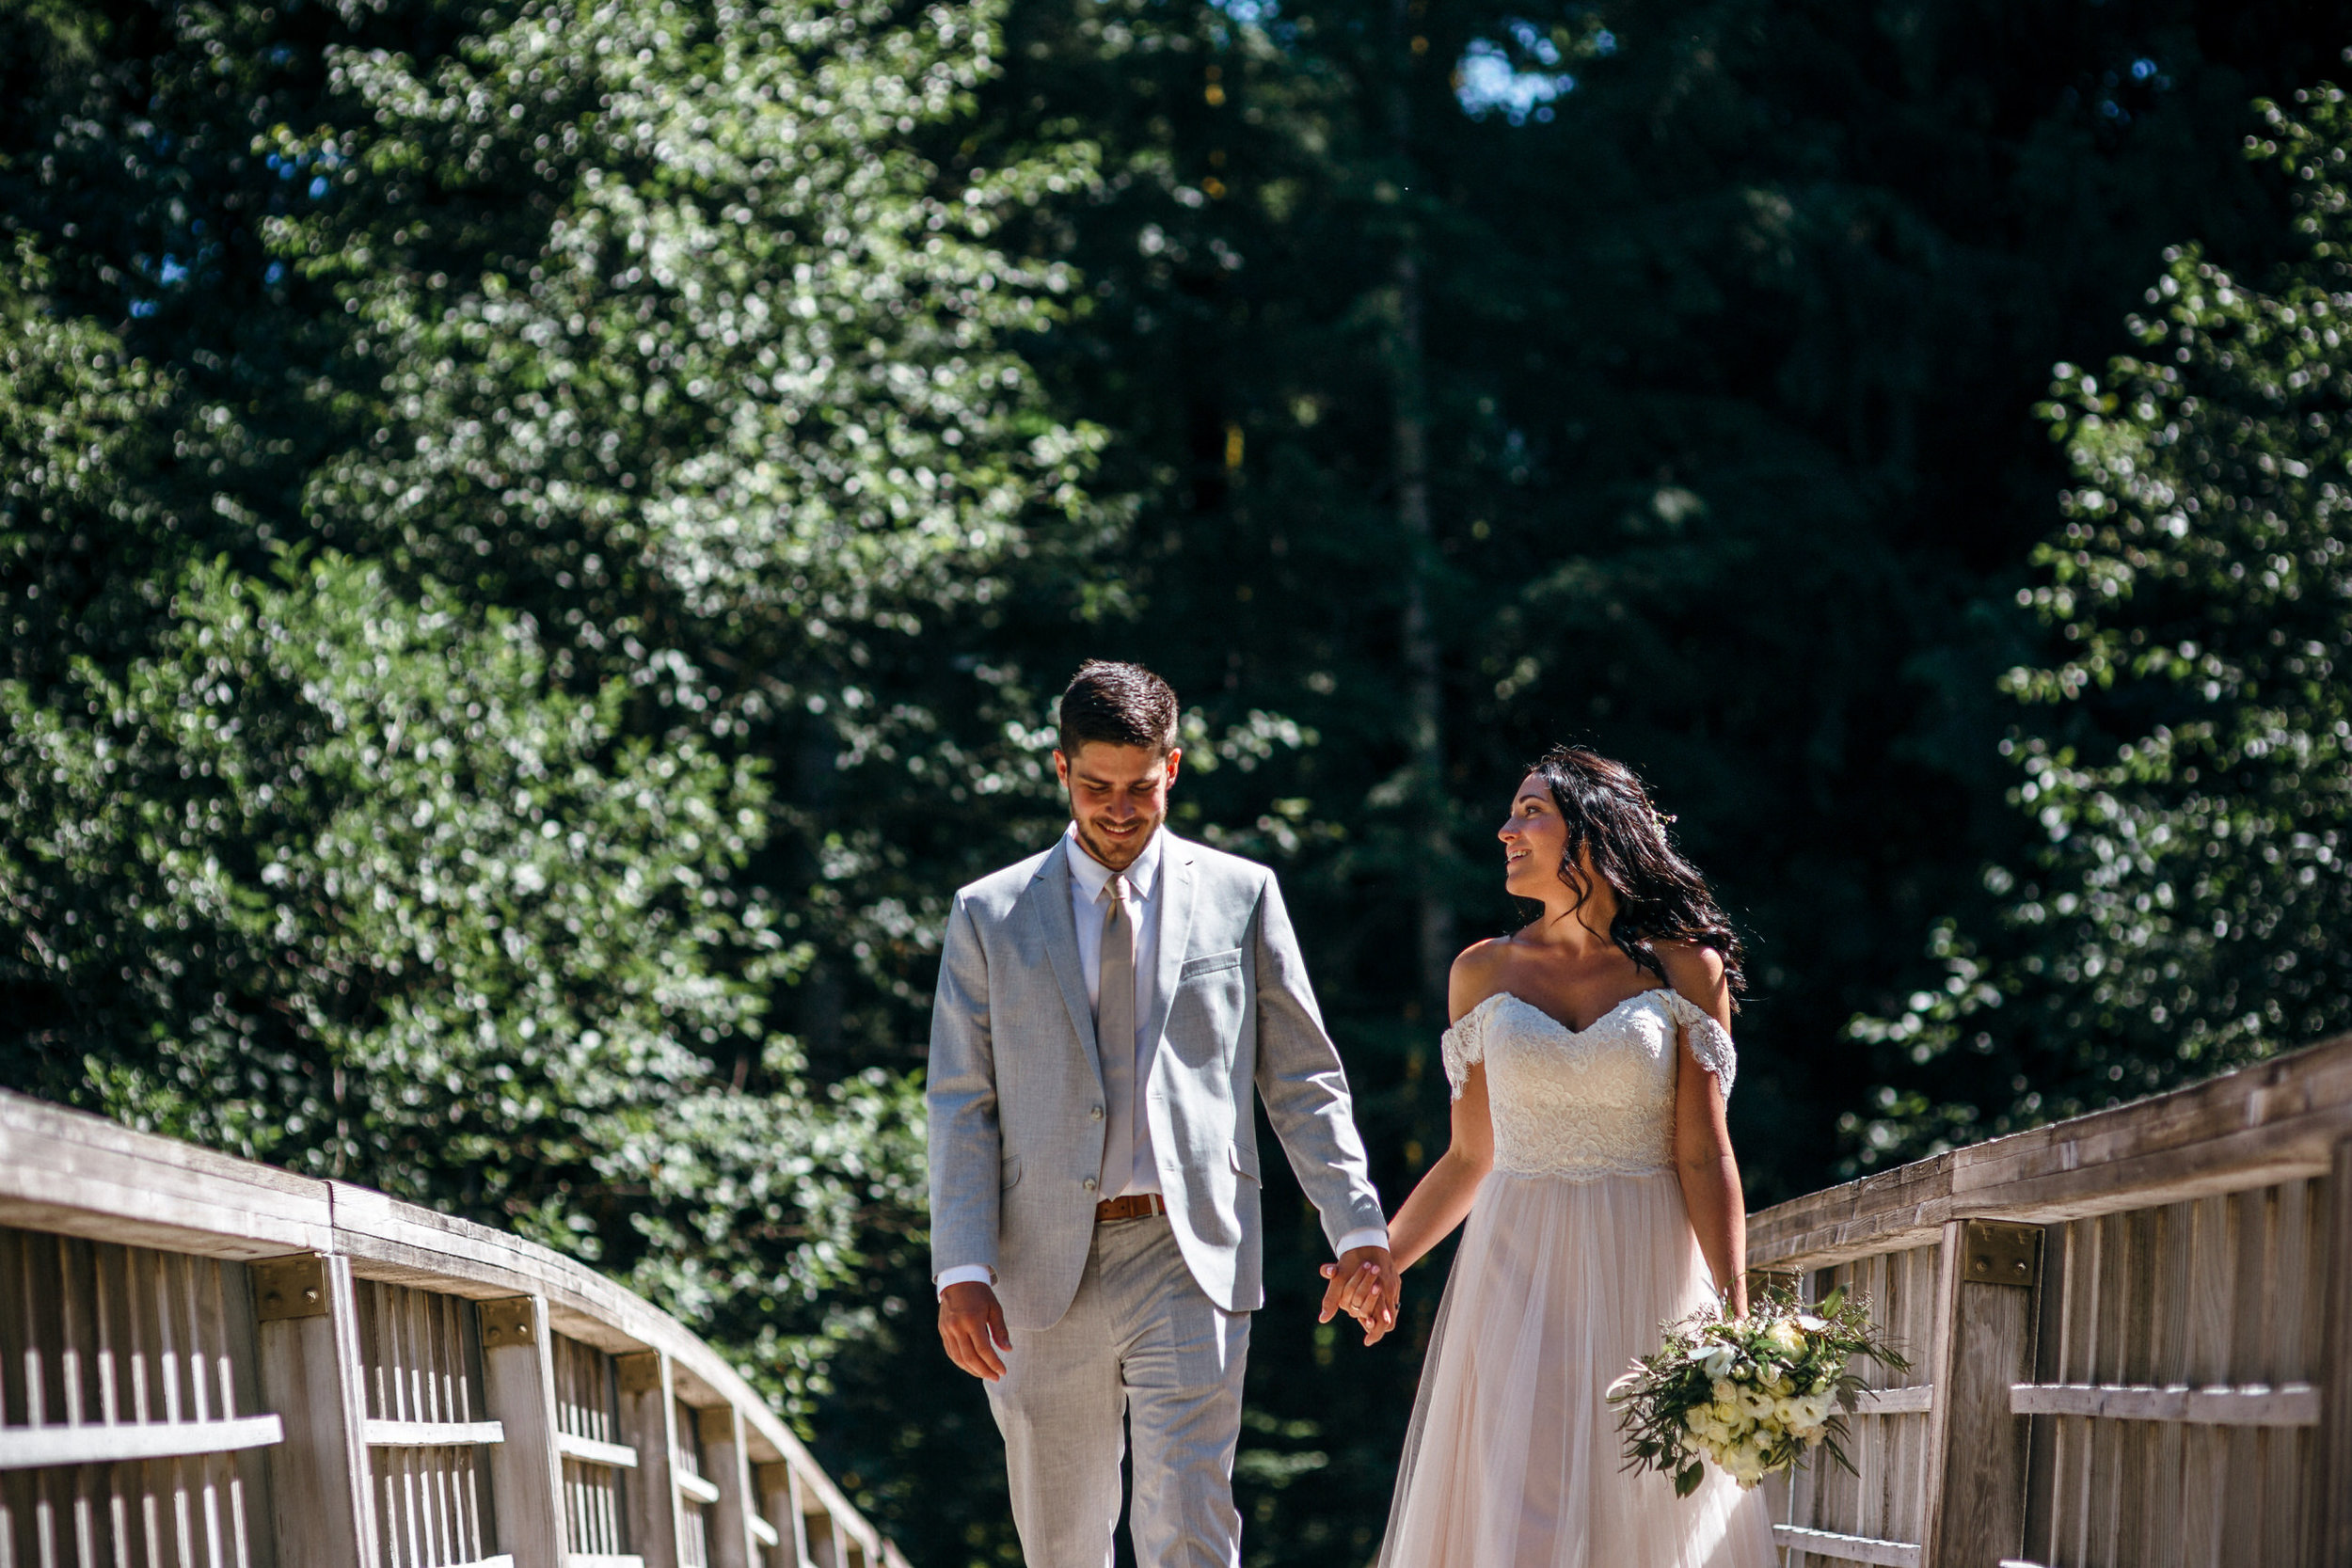 MT Hood Wildwood elopement wedding oregon portland photography0072.JPG